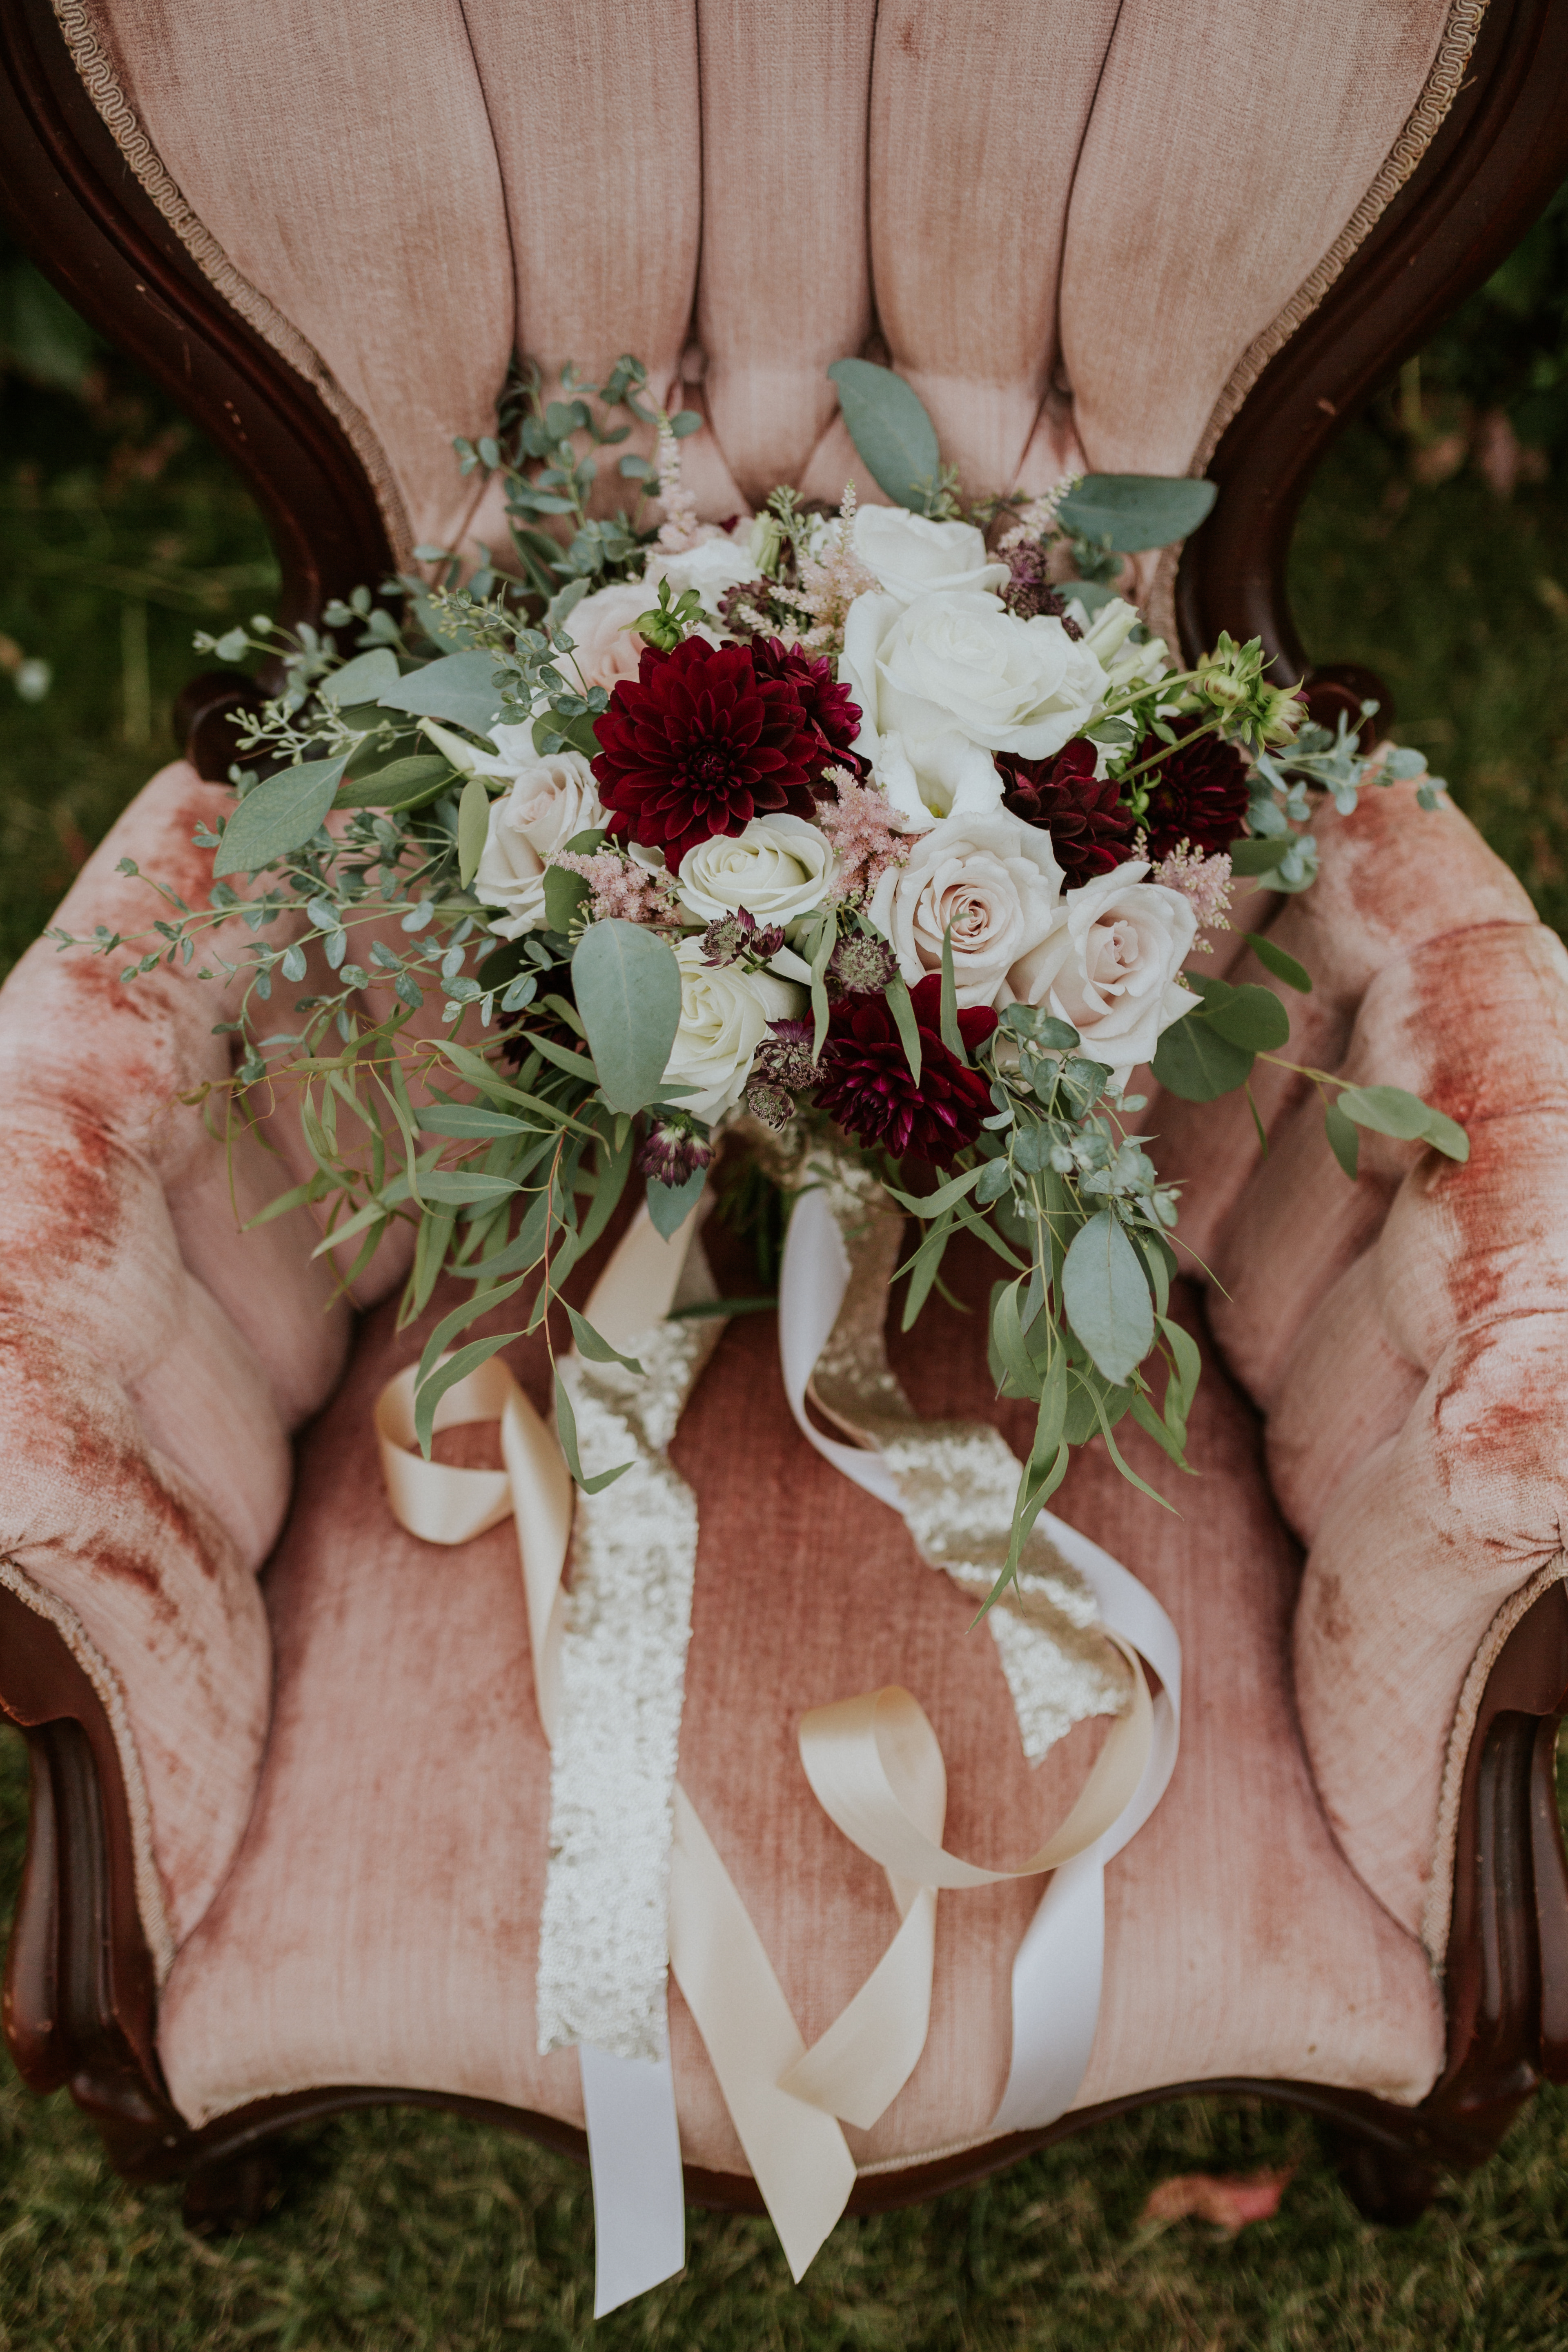 CalyxFloralDbridal bouquet with trailing silk and sequin ribbons sitting on a dusty rose chair with burgundy dahlia, quicksand roses, burgundy astrantia, ivory roses and pale pink astilbe and eucalyptus